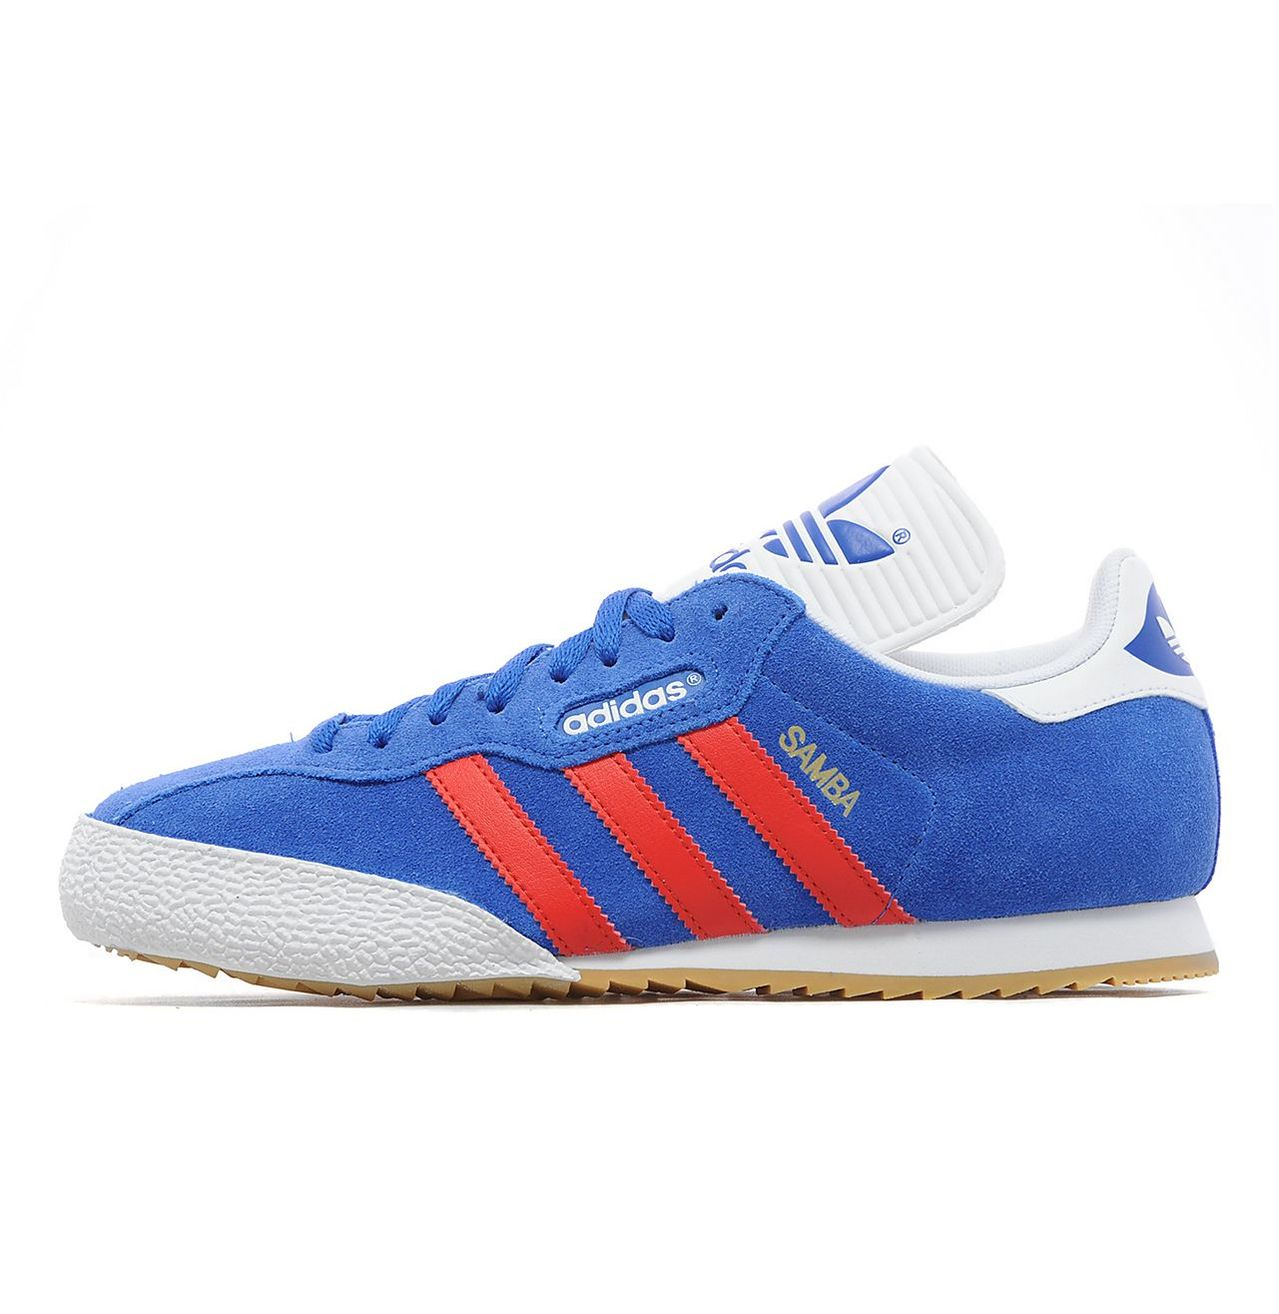 adidas samba sharp blue white